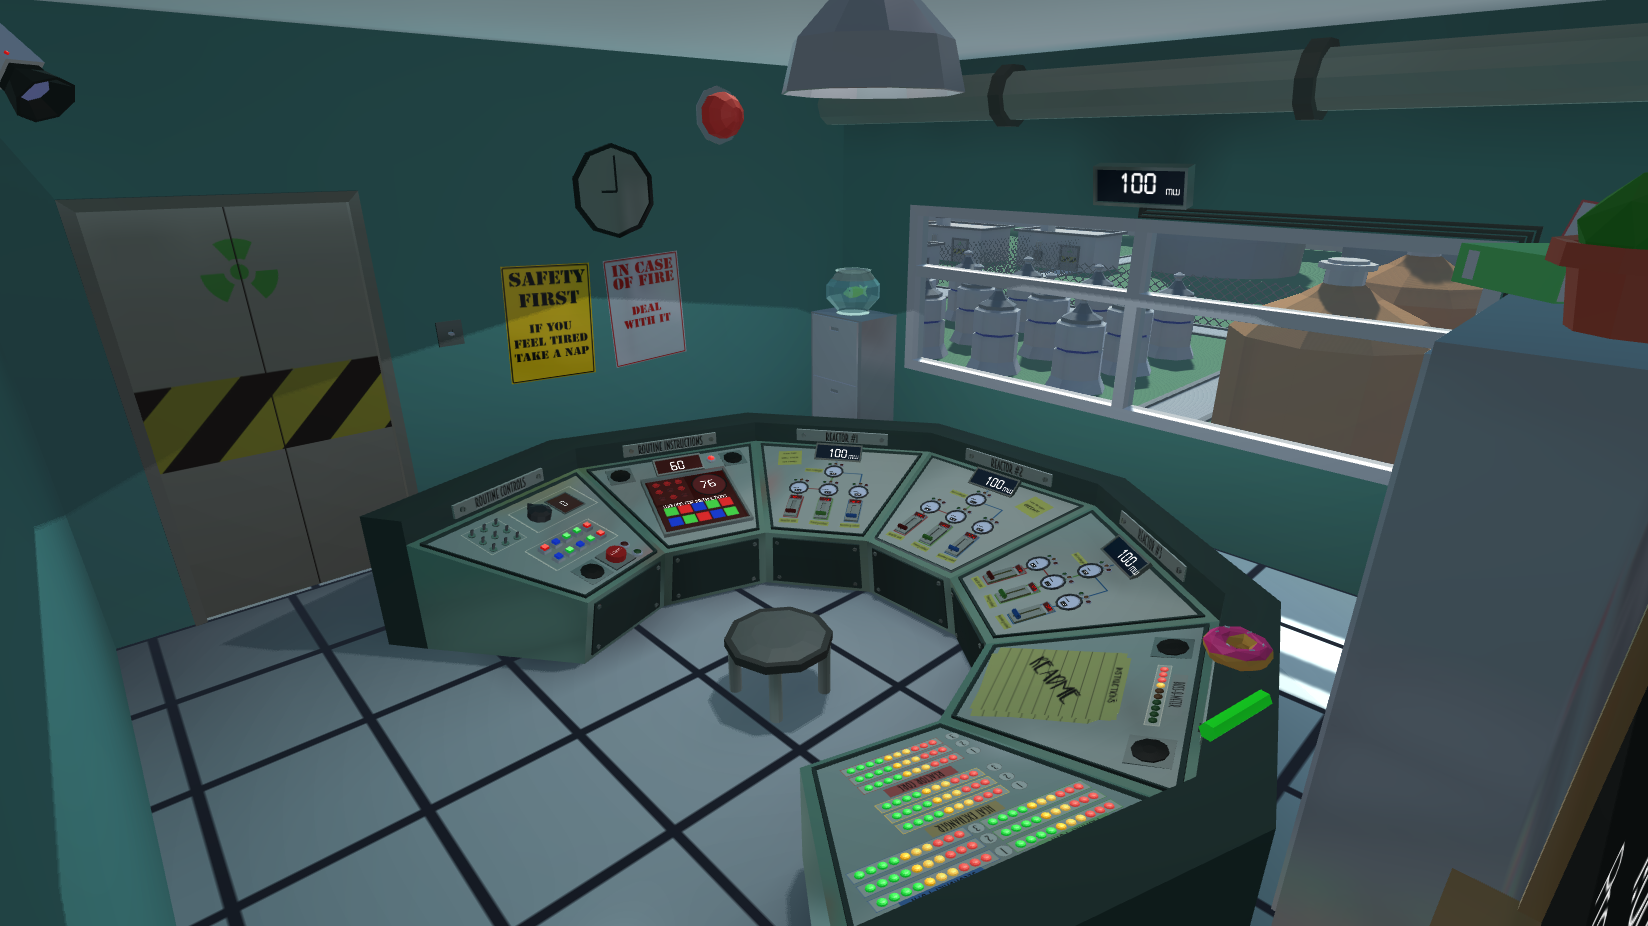 Micro-simulation technology nuclear power plant simulation.